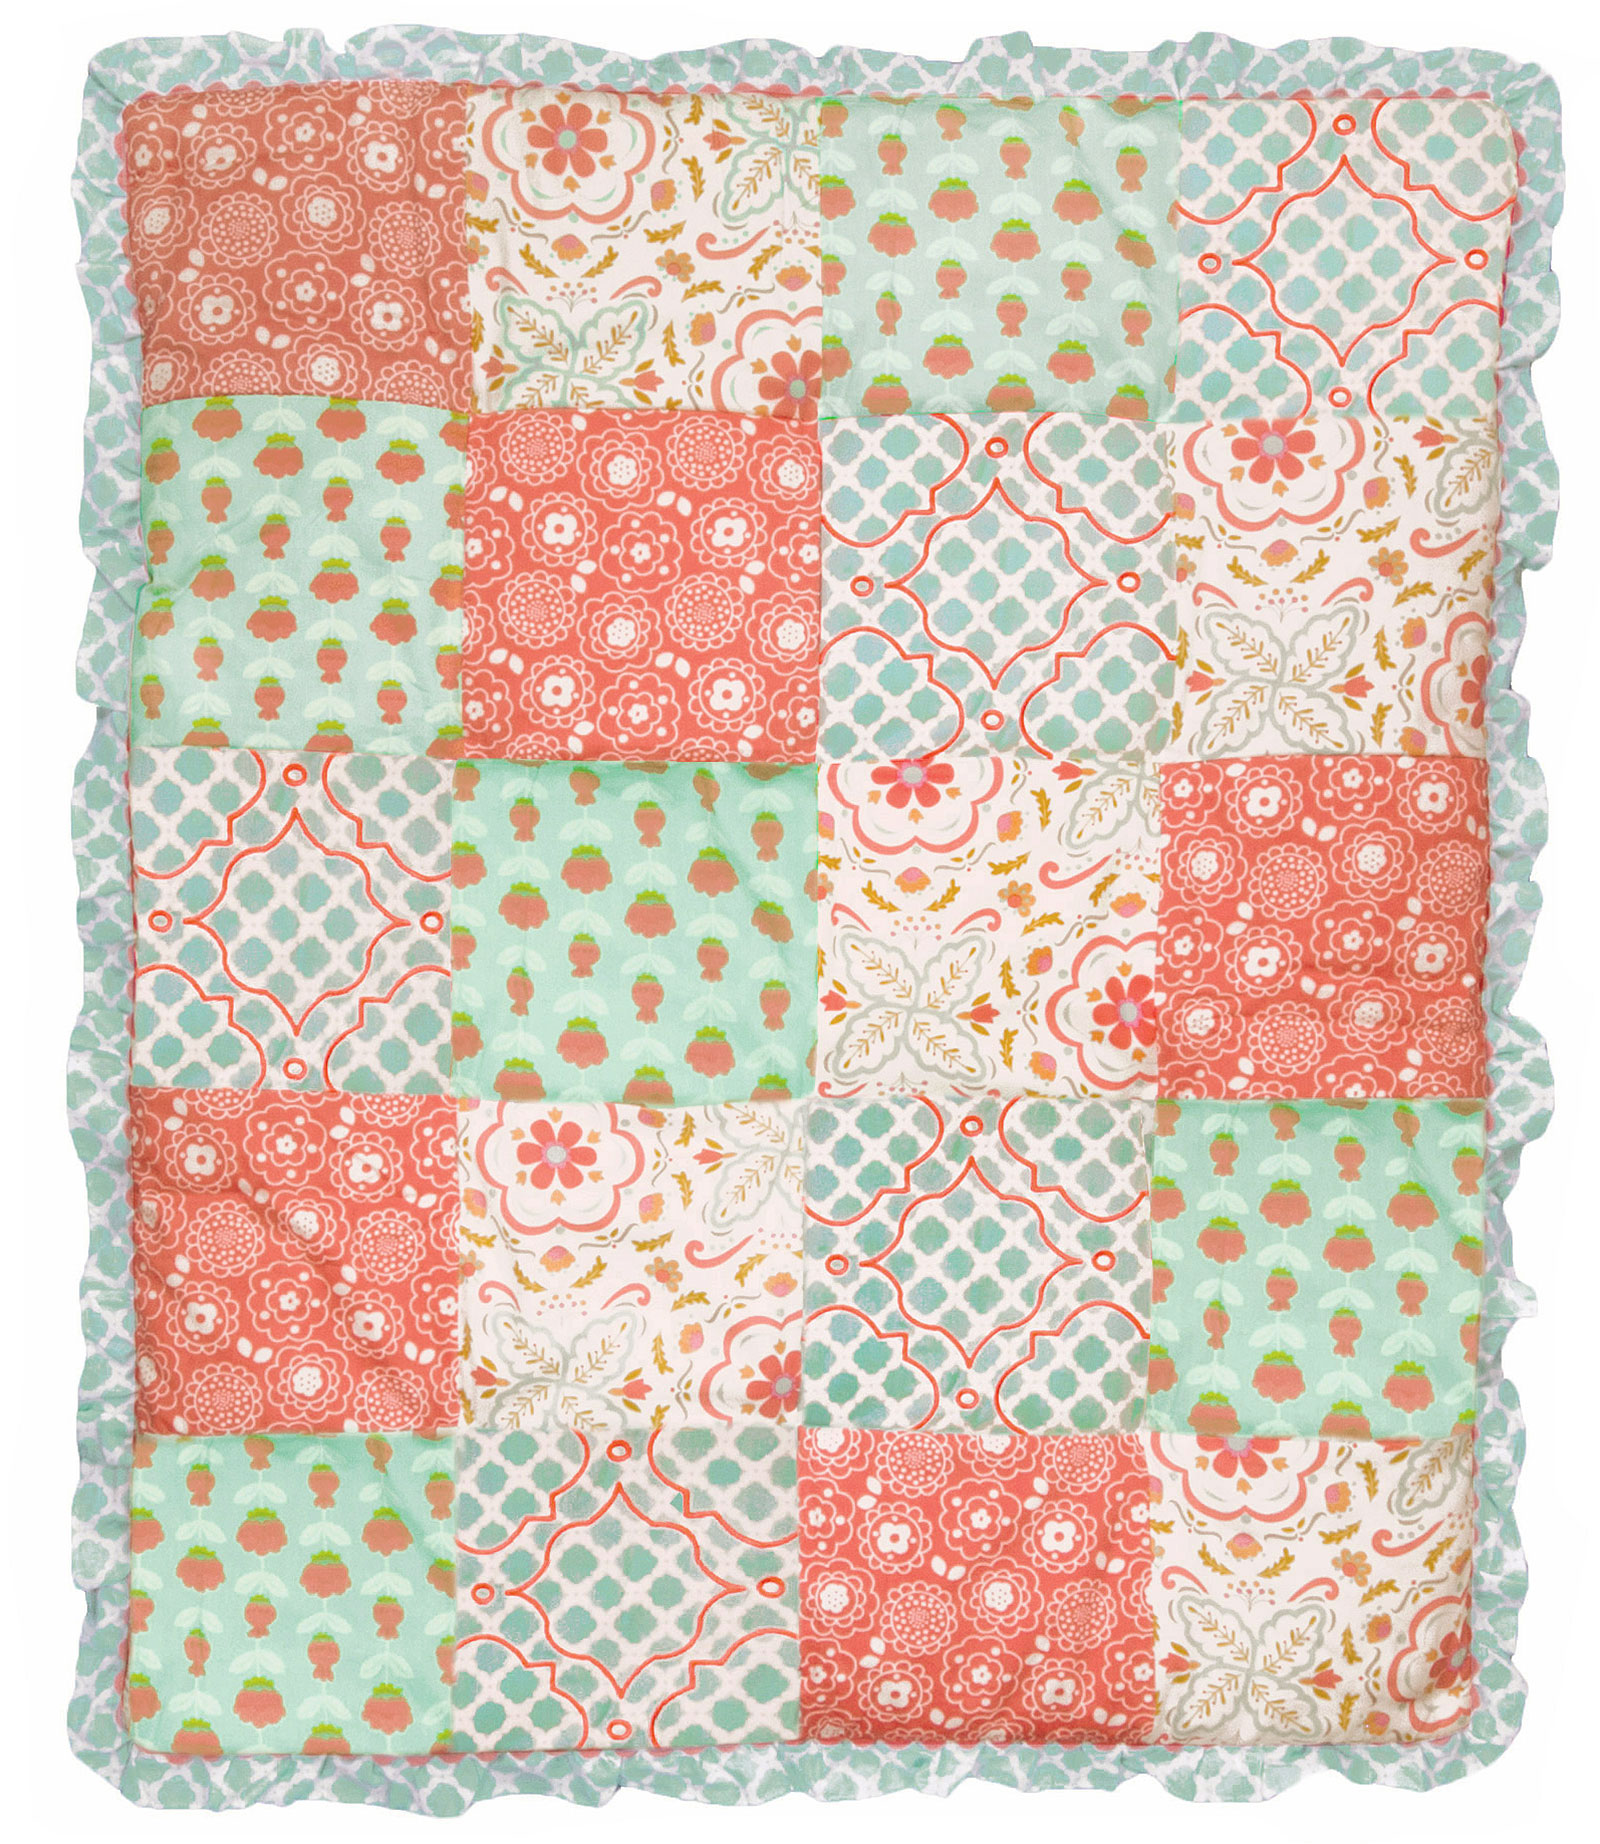 floral coral bed and crib teal girl large carousel baby bedding